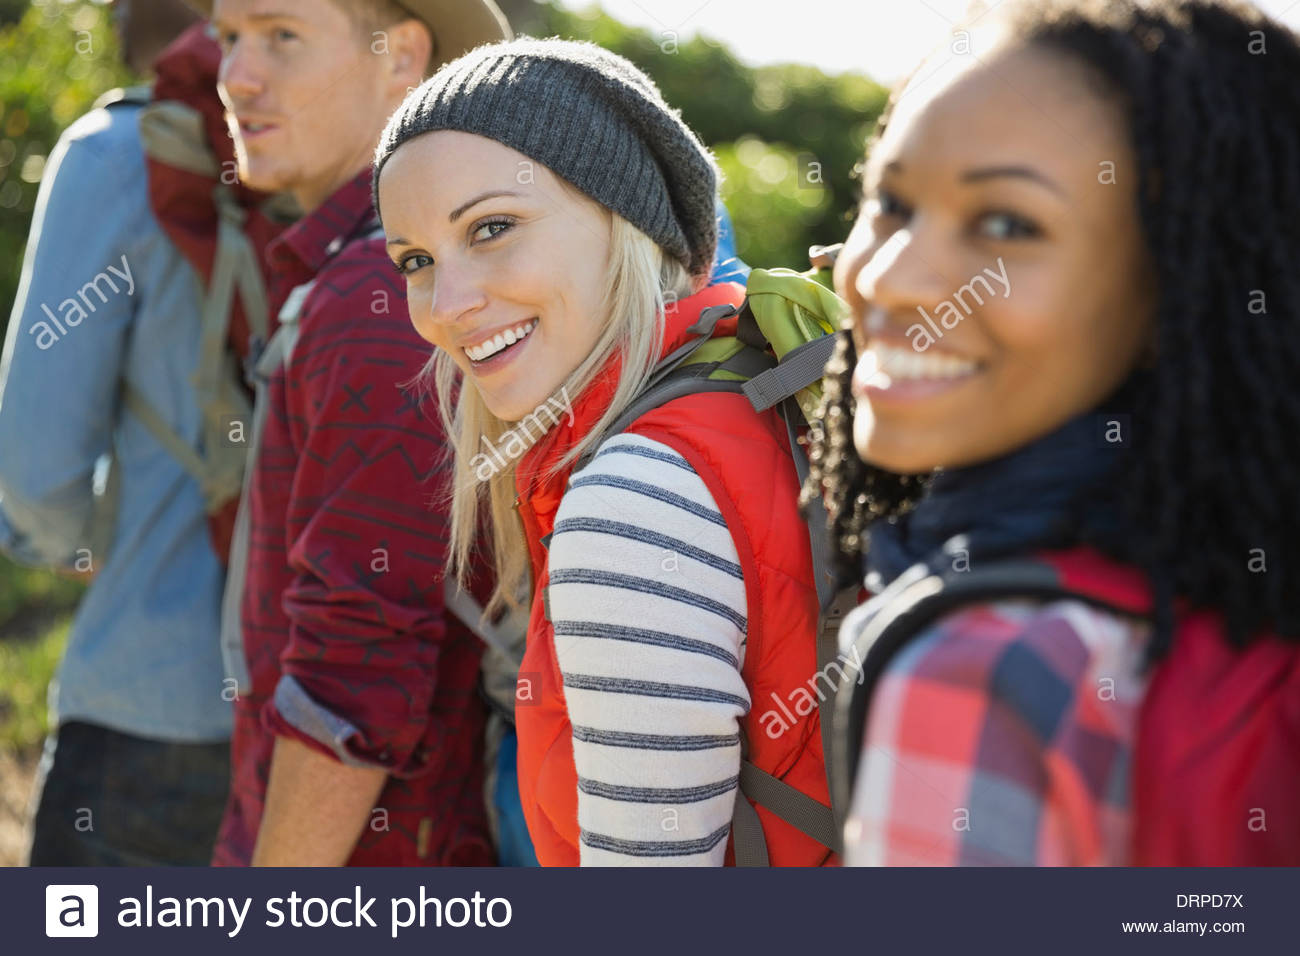 Portrait of female backpacker with group of friends - Stock Image